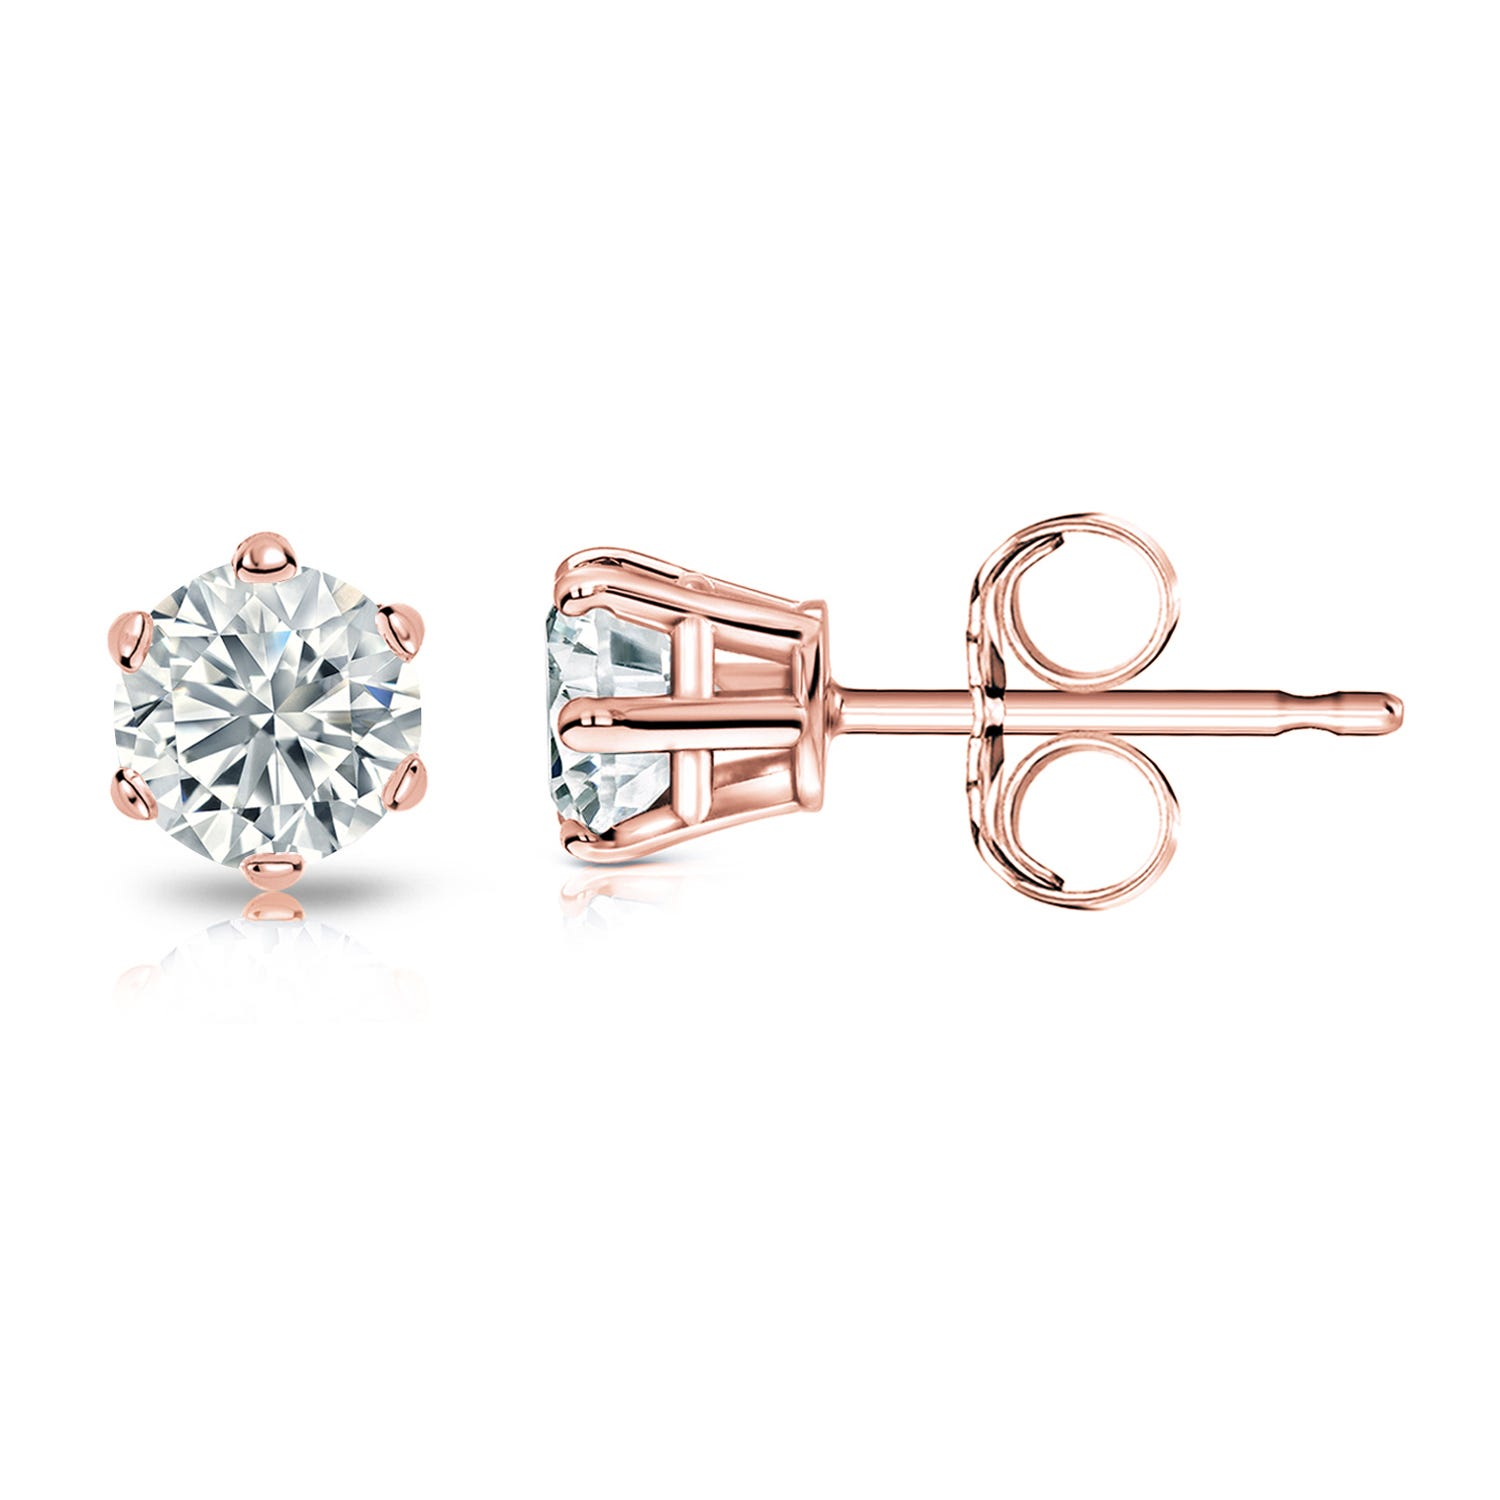 Round Diamond 5/8ctw. (IJ-SI2) Solitaire Stud 6-Prong Earrings in 14K Rose Gold